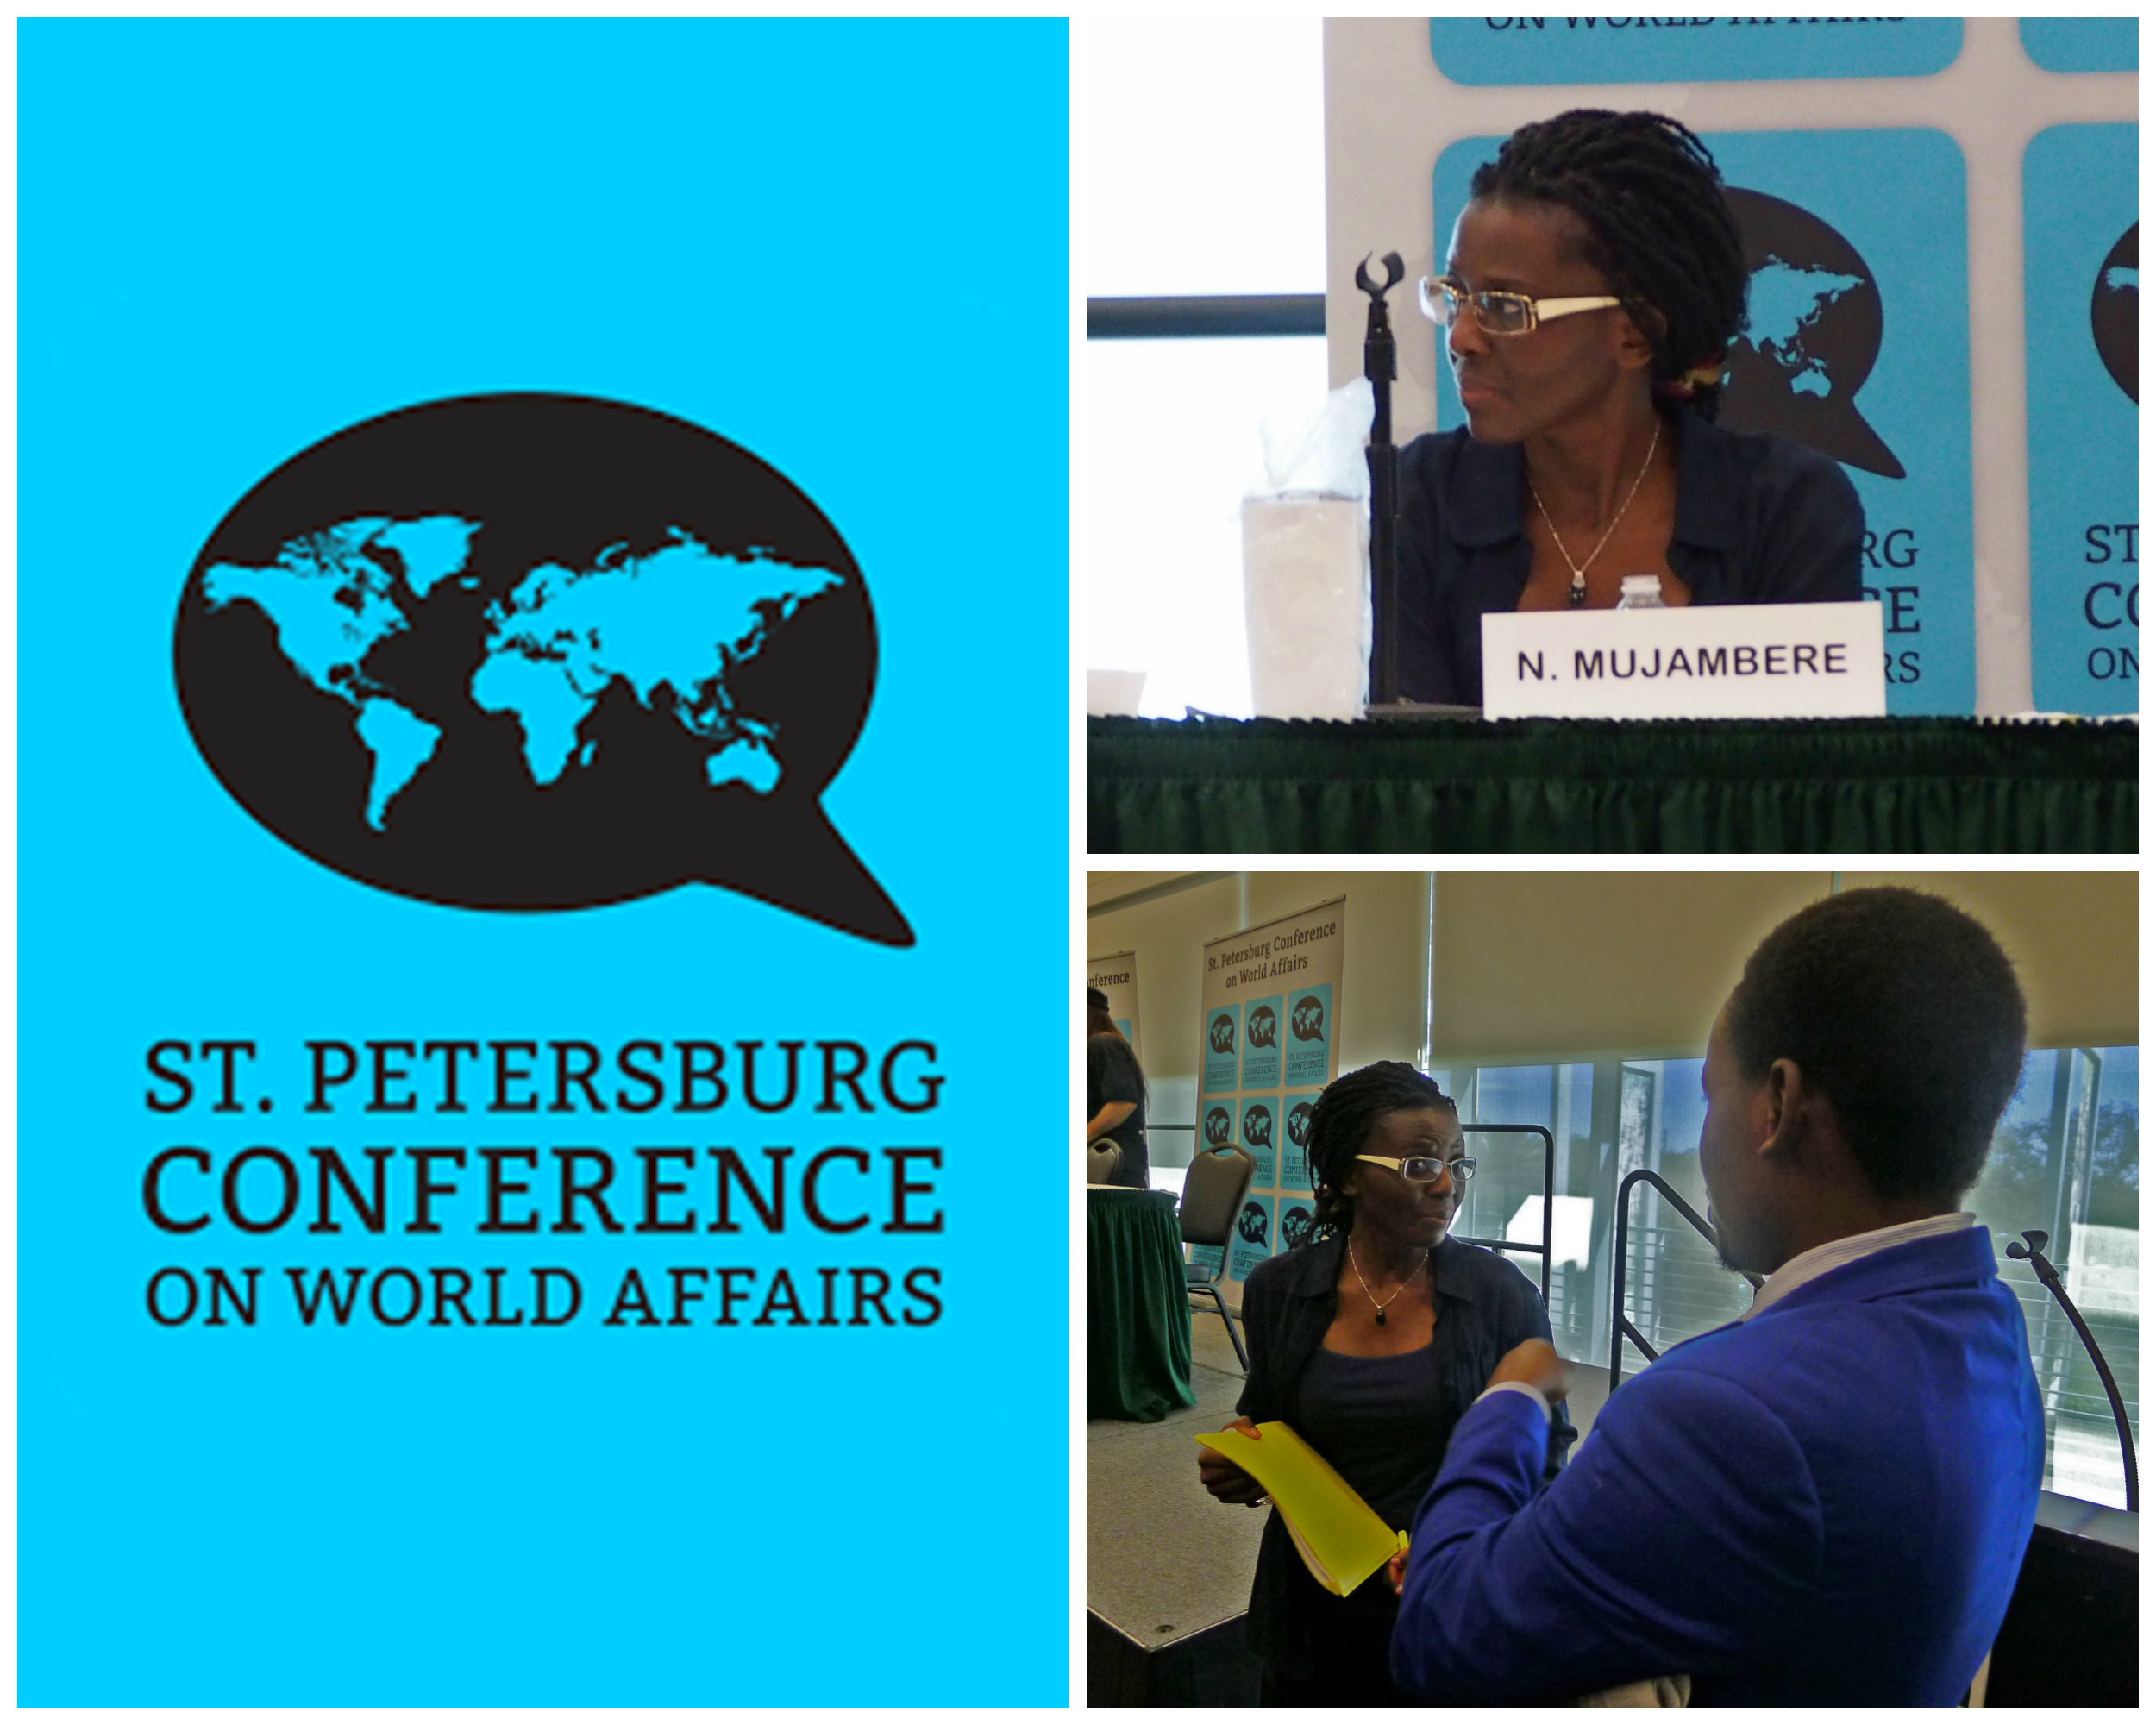 Nabintu Mujamberé speaks to the St. Petersburg, Fla., Conference on World Affairs.